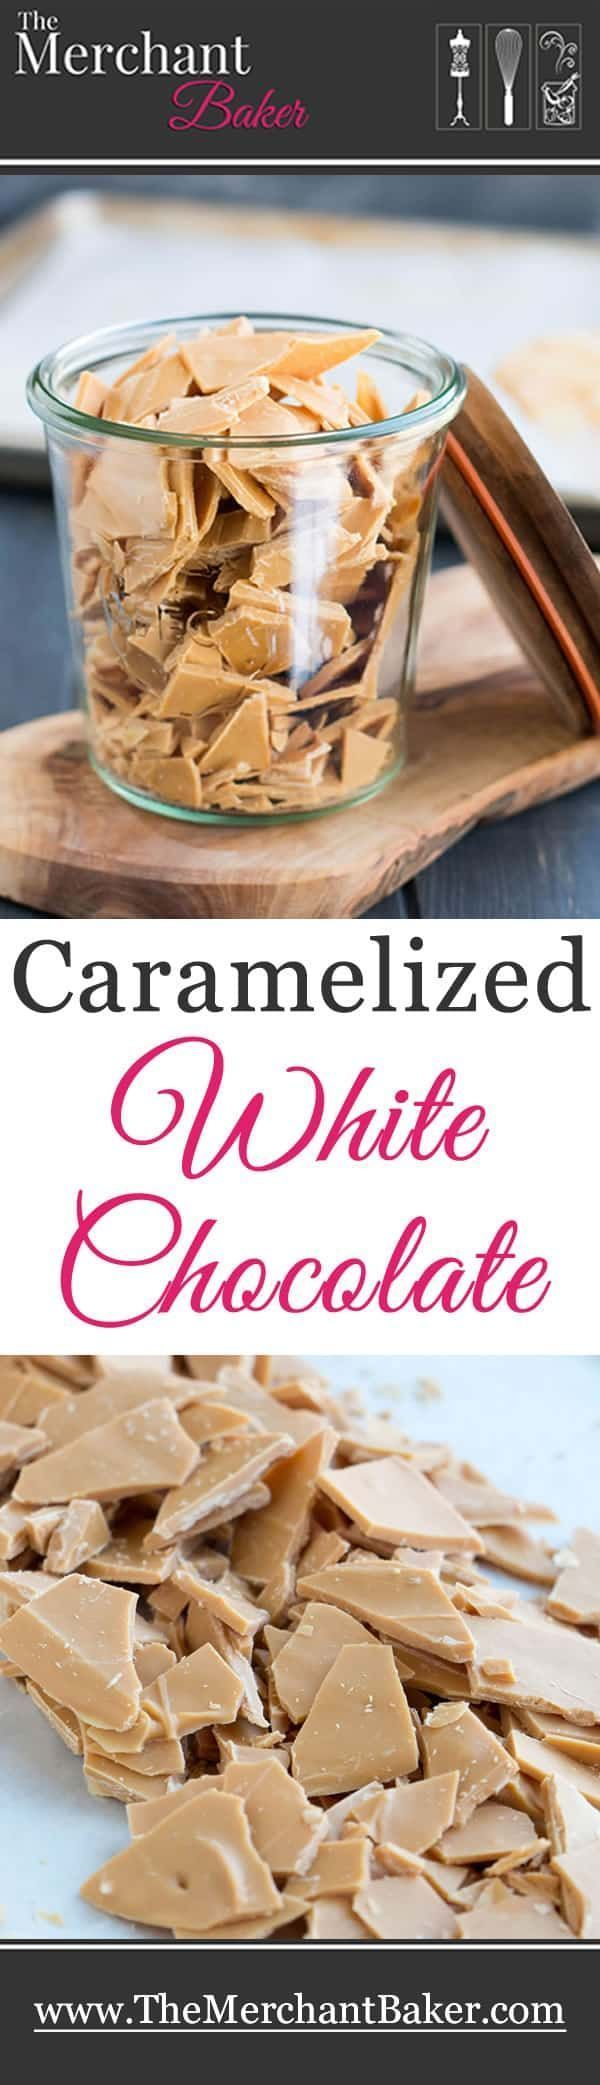 Caramelized White Chocolate Caramelized White Chocolate. Slow roasting turns white chocolate into a delicious caramelized white chocolate. Great to eat on its own or in any recipe that calls for chocolate!